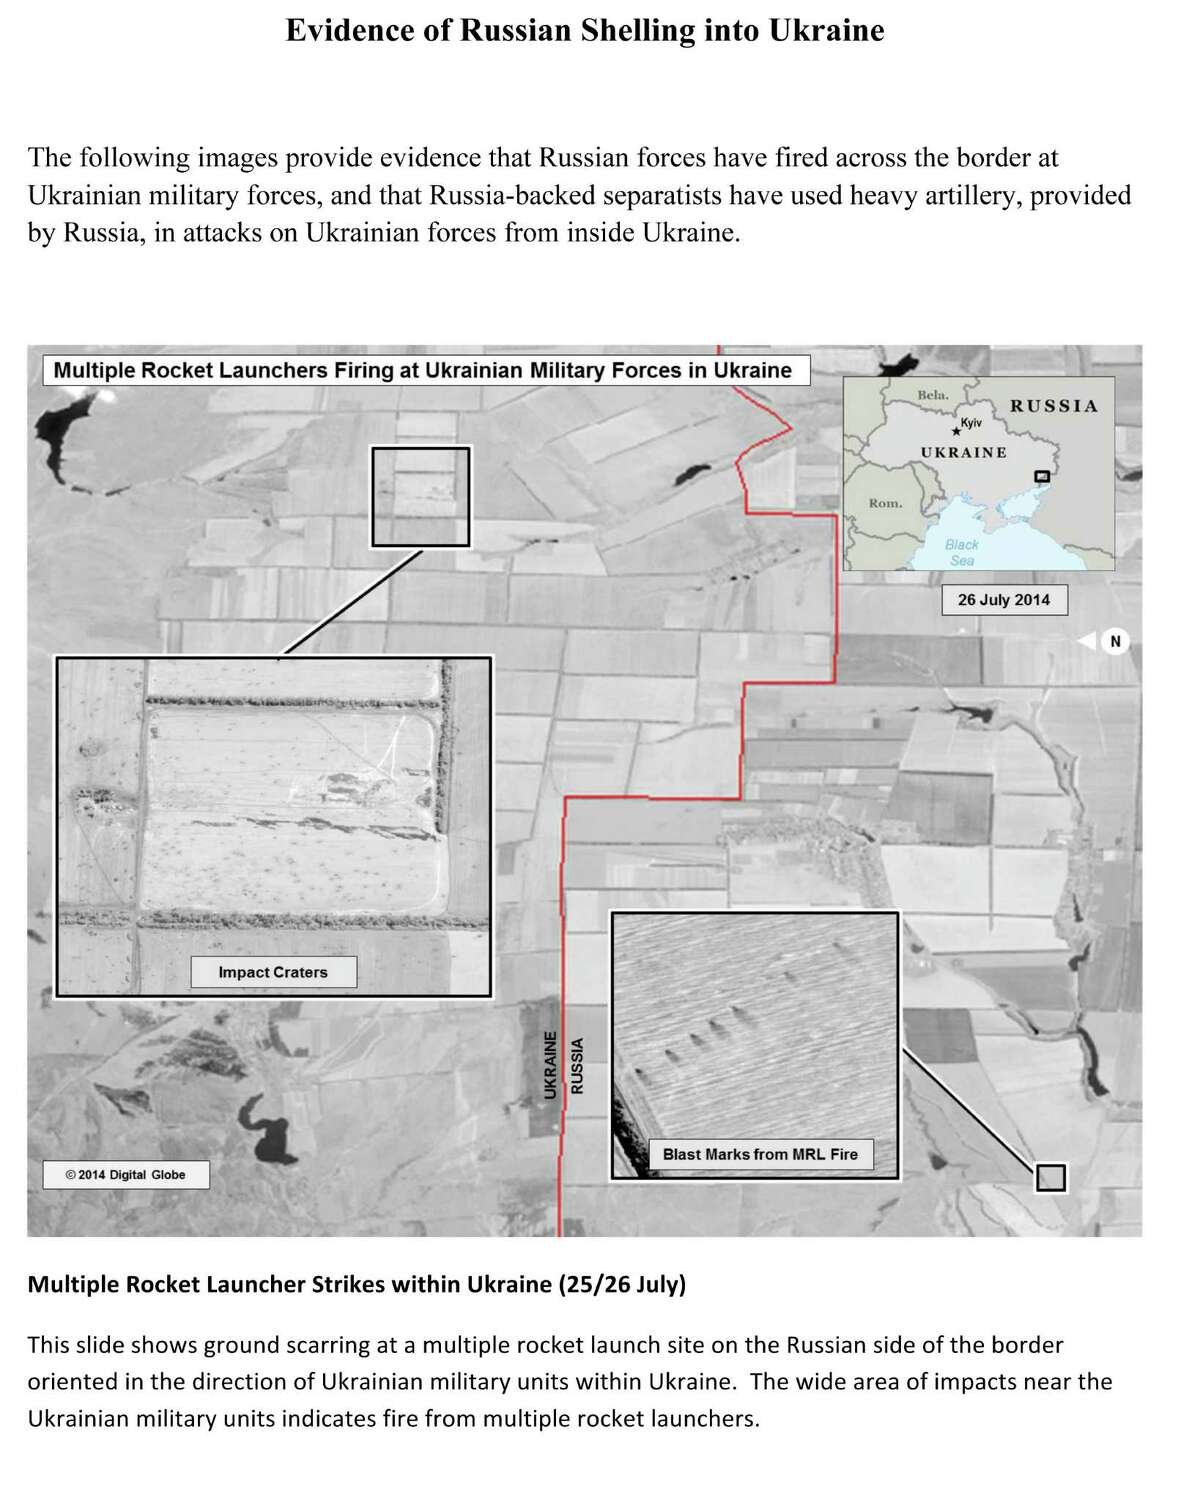 This first page of a four page document released by the U.S. State Department in Washington, July 27, 2014 shows a satellite image that purports to shows ground scarring at a multiple rocket launch site on the Russian side of the border oriented in the direction of Ukraine military unites within Ukraine. The United States says the images back up its claims that rockets have been fired from Russia into eastern Ukraine and heavy artillery for separatists has also crossed the border.AP story: The U.S. State Department, meanwhile, released satellite images that it says back up its claims that rockets have been fired from Russia into eastern Ukraine and heavy artillery for separatists has also crossed the border.